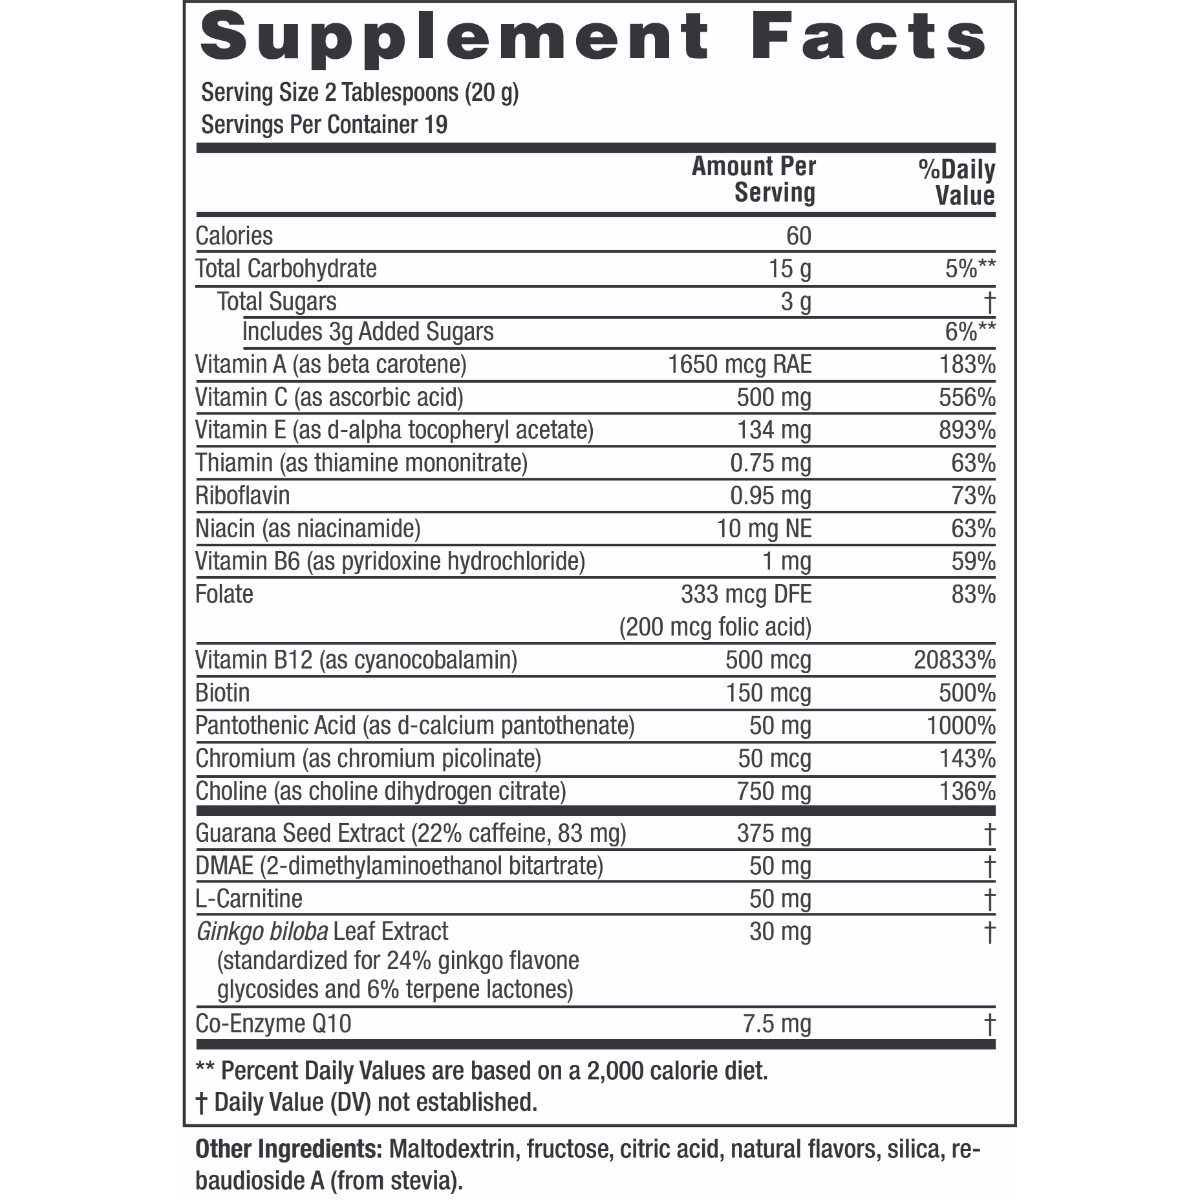 Supplement facts for Twinlab Choline Cocktail